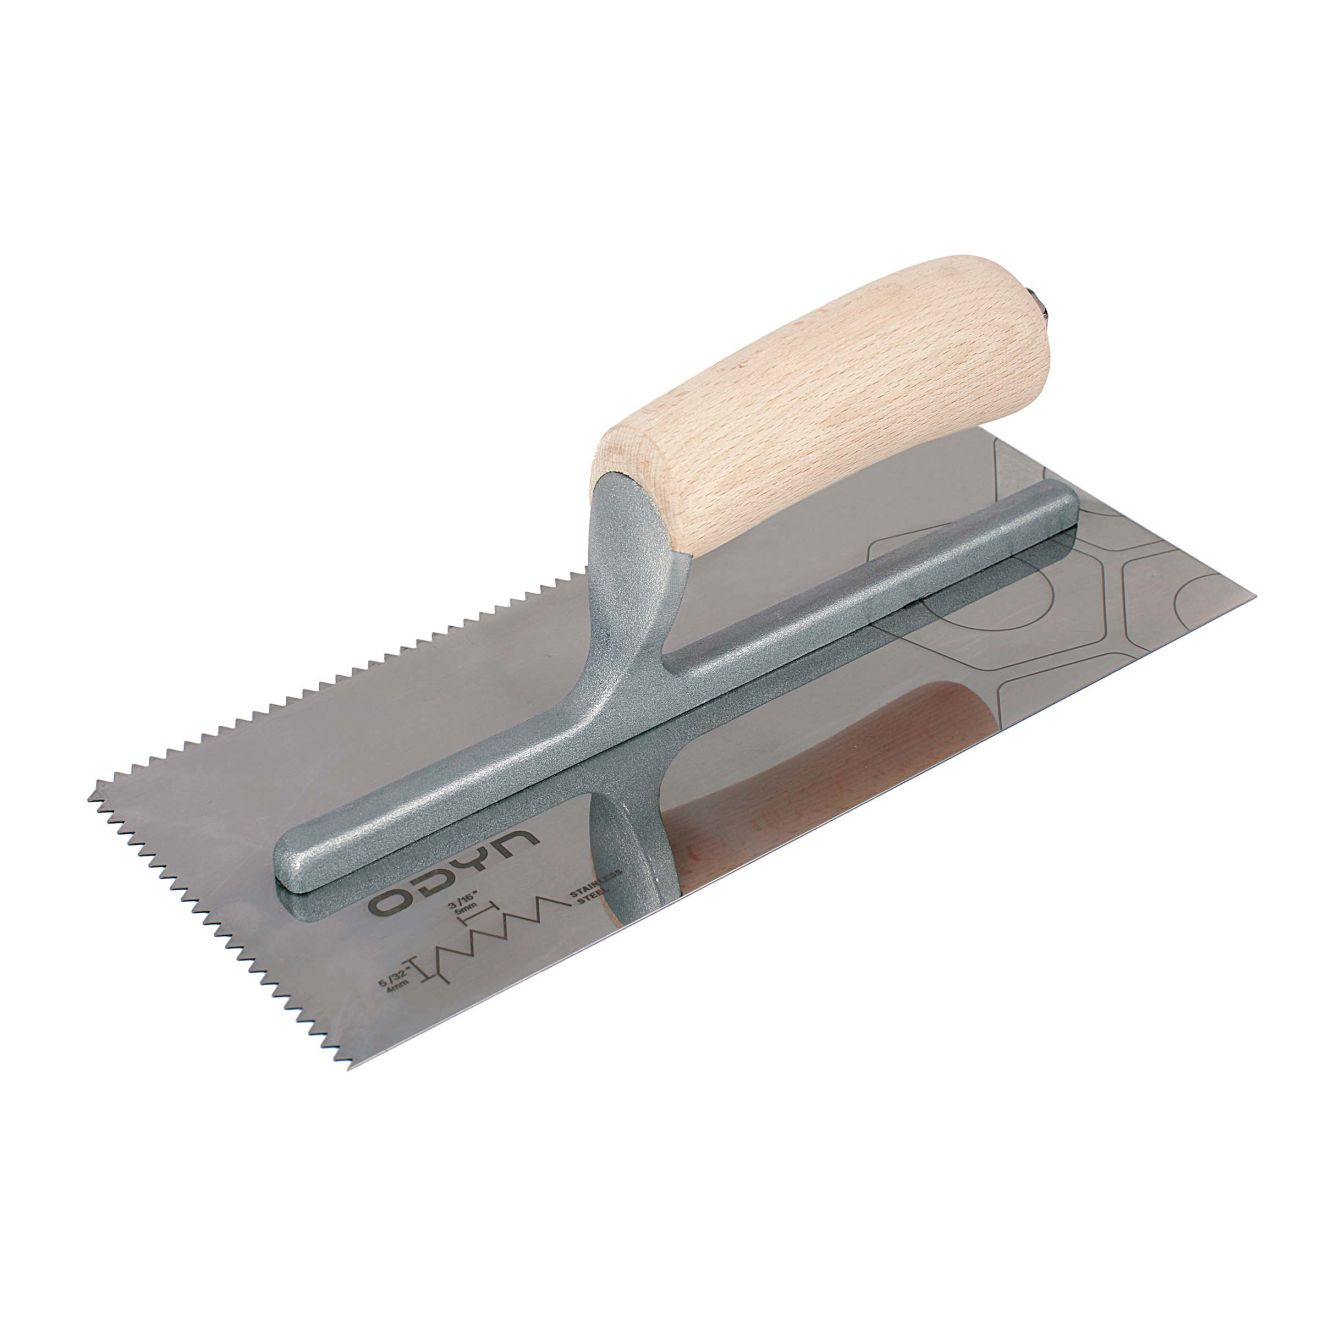 Odyn 11 in. x 3/16 in. x 5/32 in. V-Notch Stainless Steel Trowel